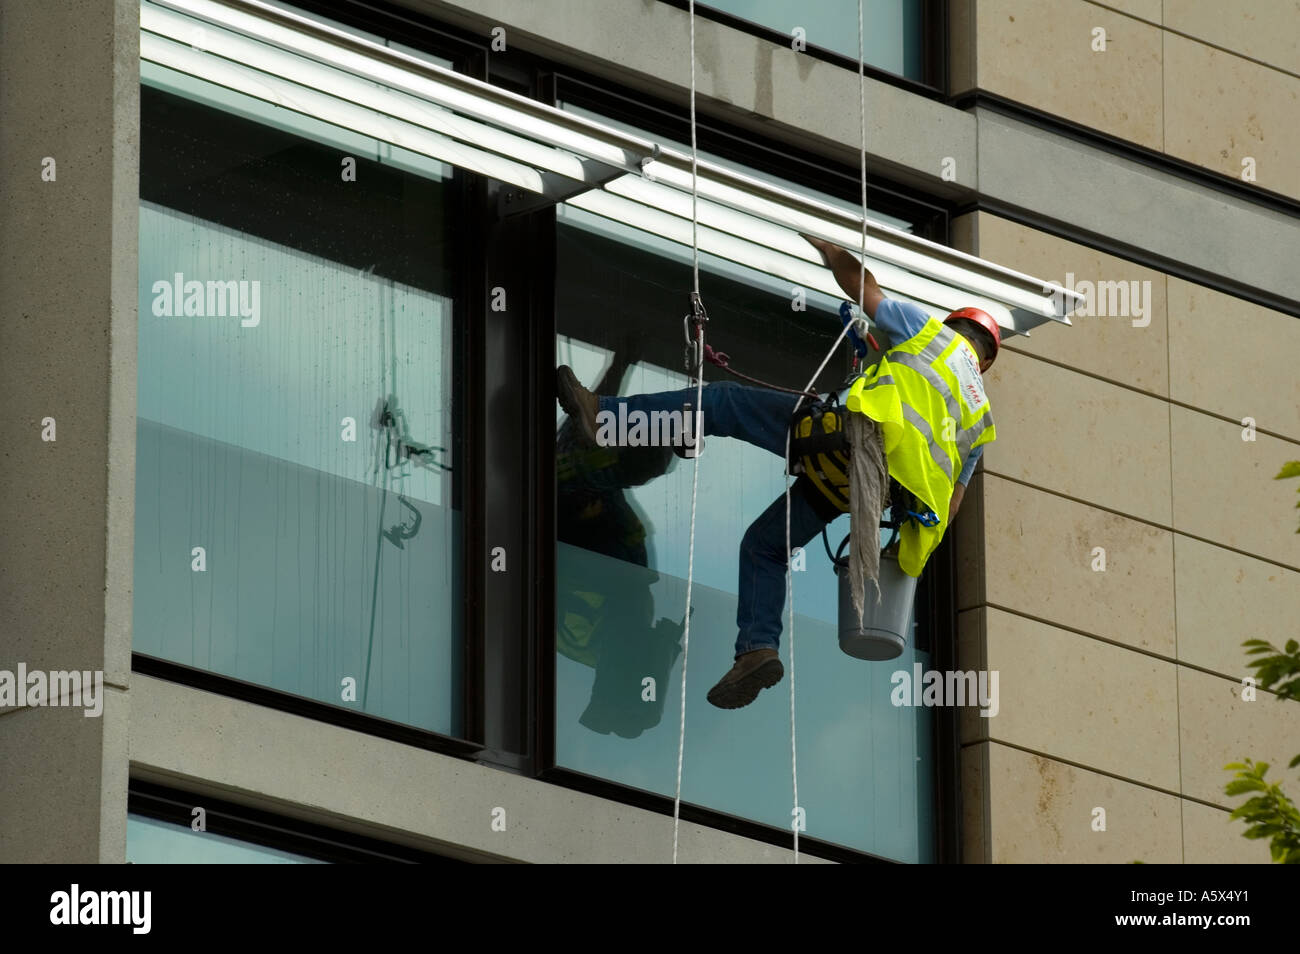 Window cleaner using industrial rope access techniques at work on a hotel building, Manchester, UK - Stock Image